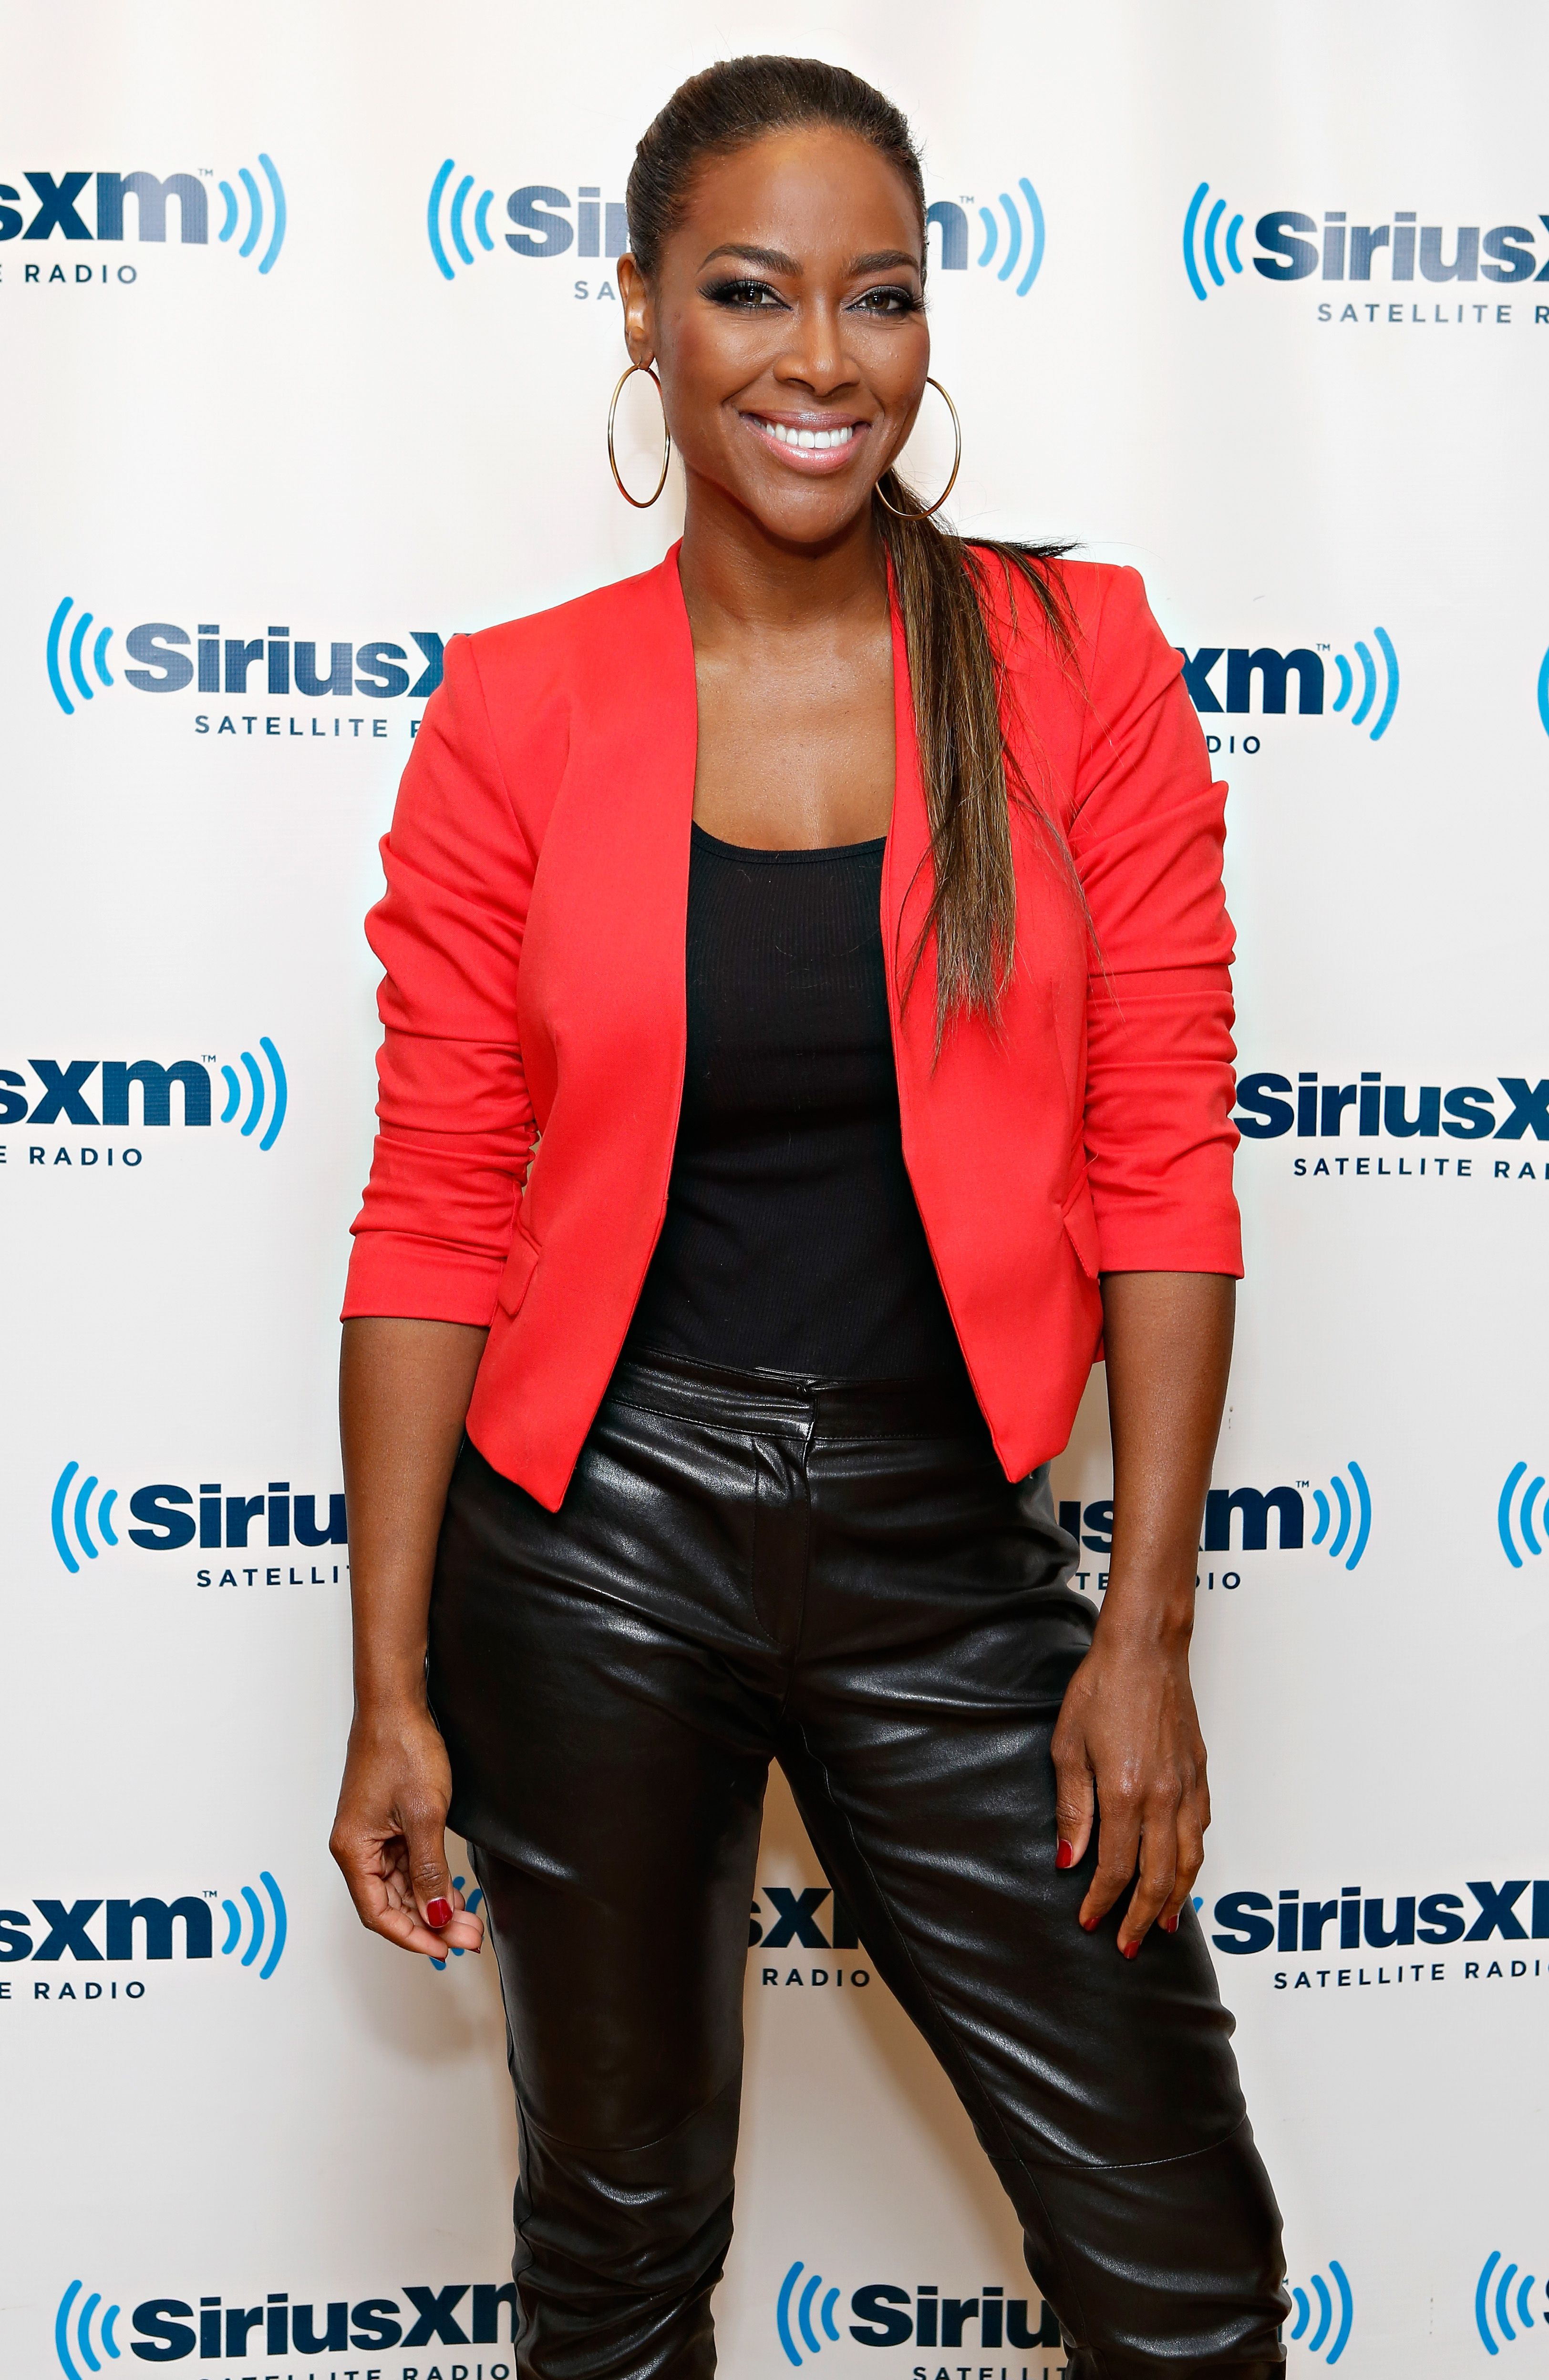 Kenya Moore at the SiriusXM Studios on November 27, 2012 in New York City  | Photo: Getty Images